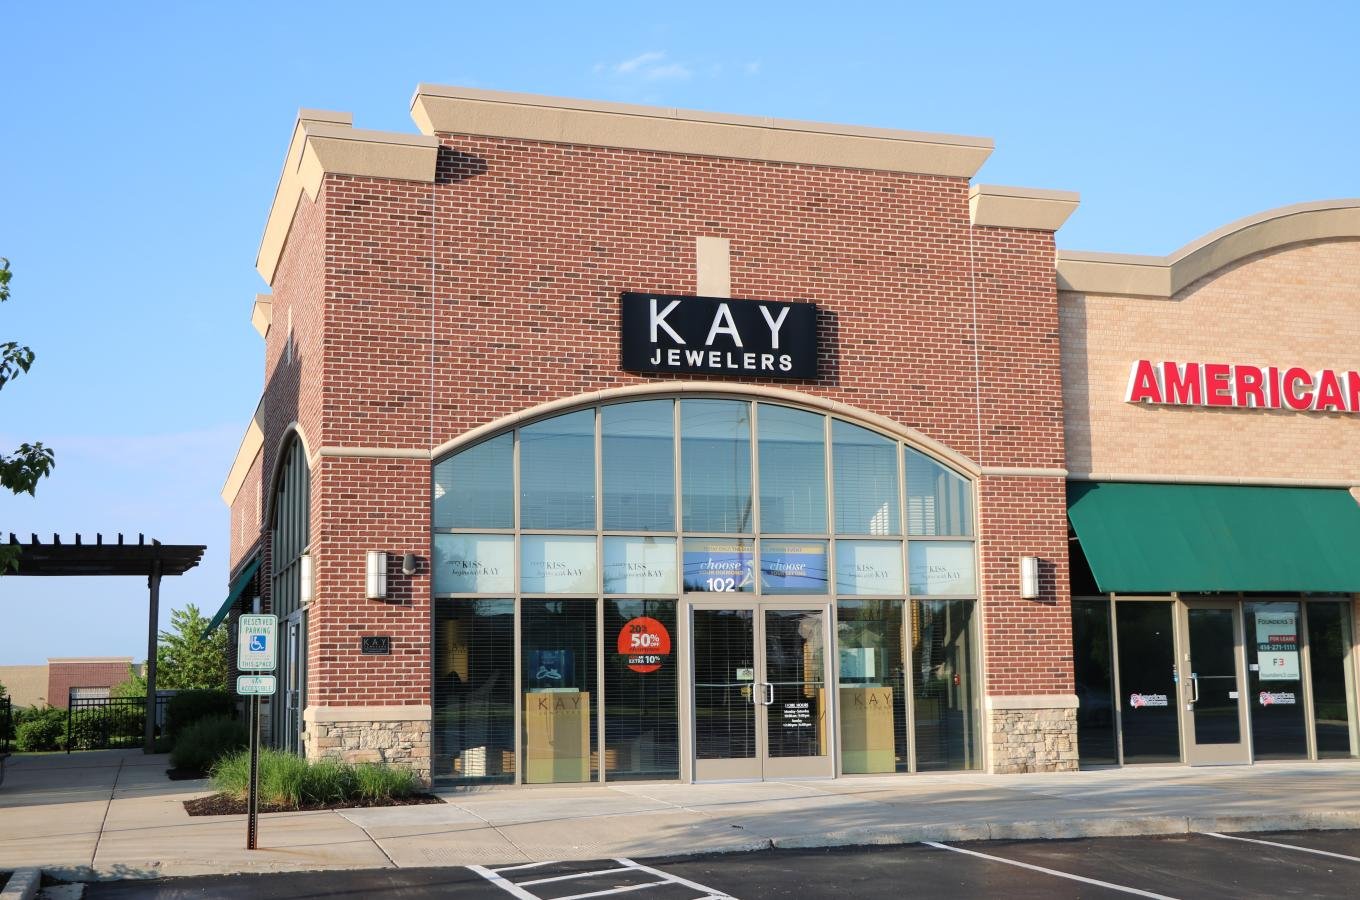 Kay jewelers storefront V Pic